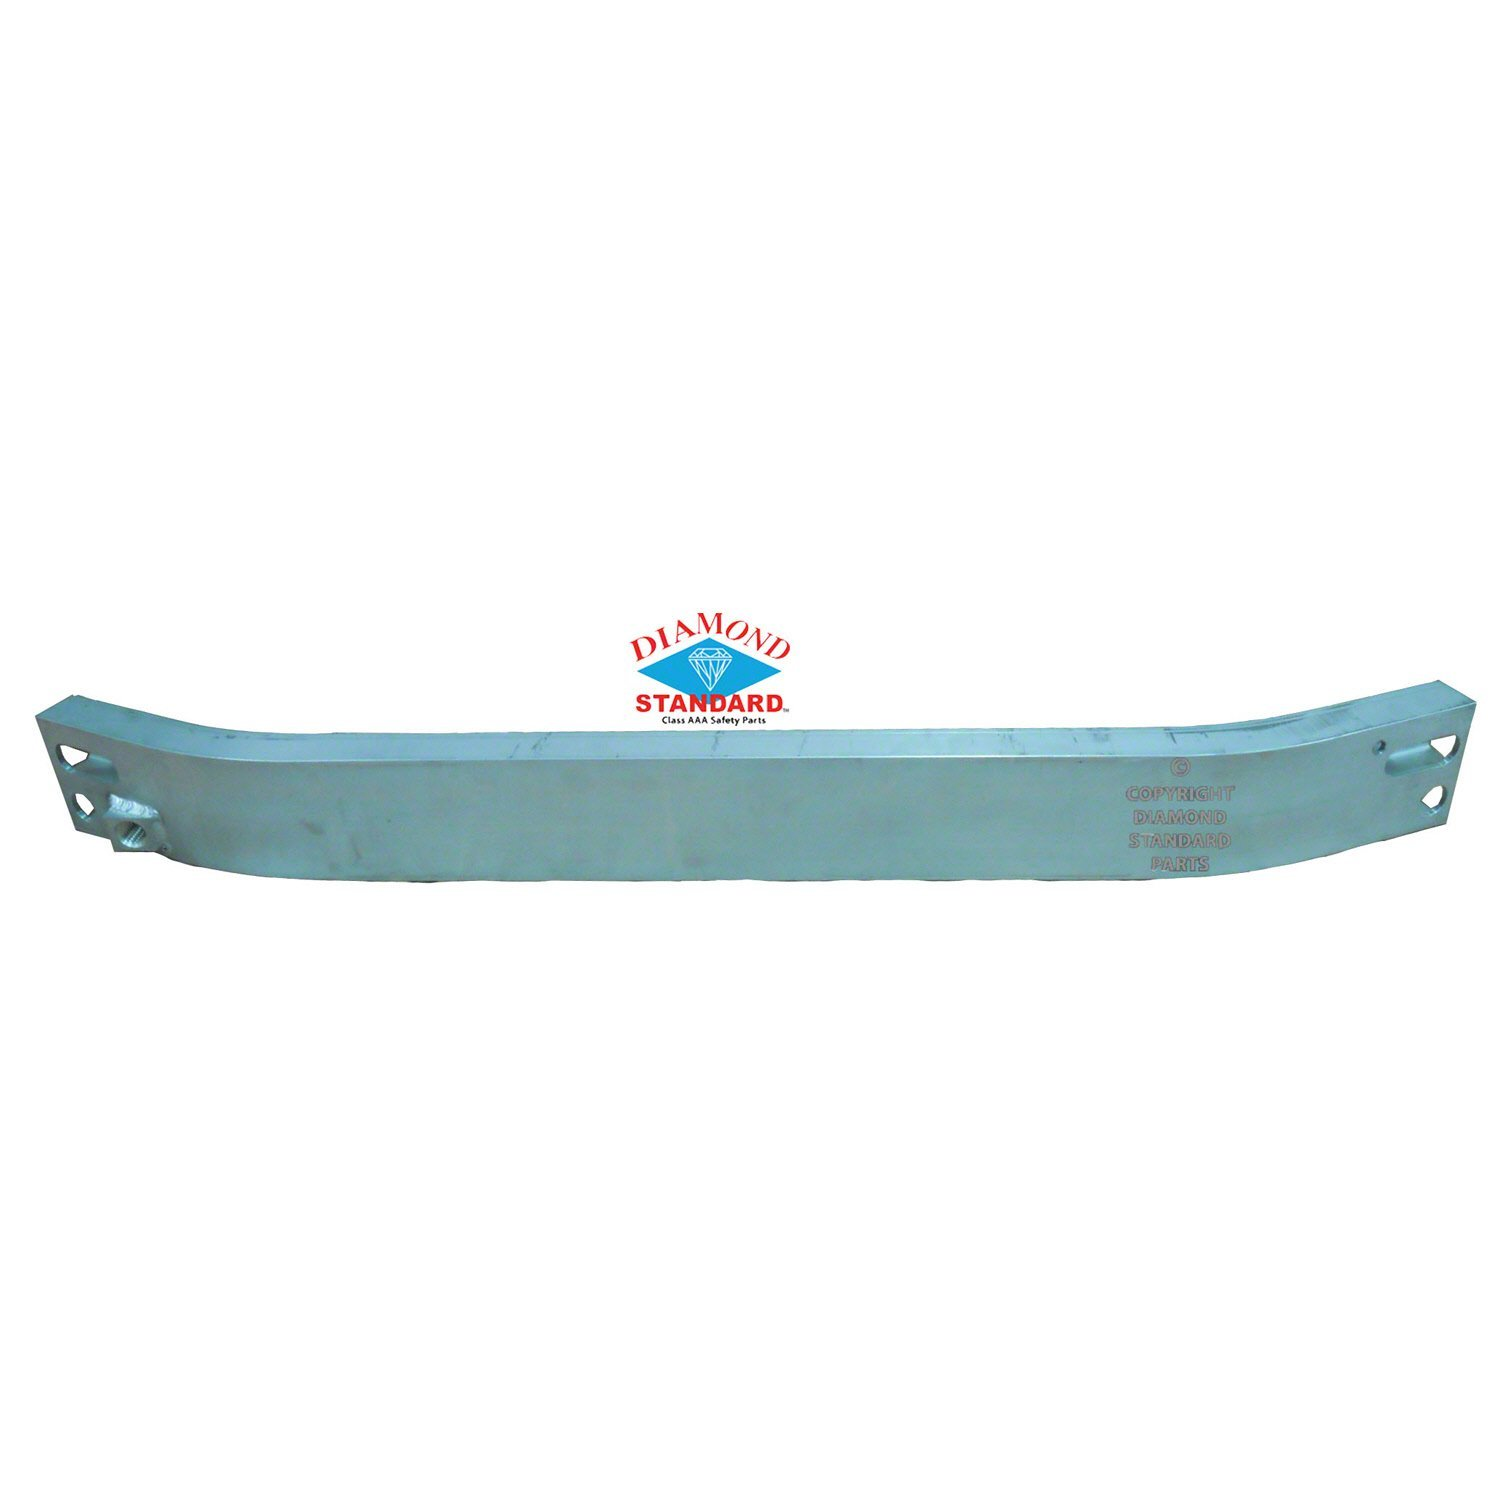 Crash Parts Plus Crash Parts Plus CAPA Front Bumper Reinforcement for 2009-2014 Nissan Murano